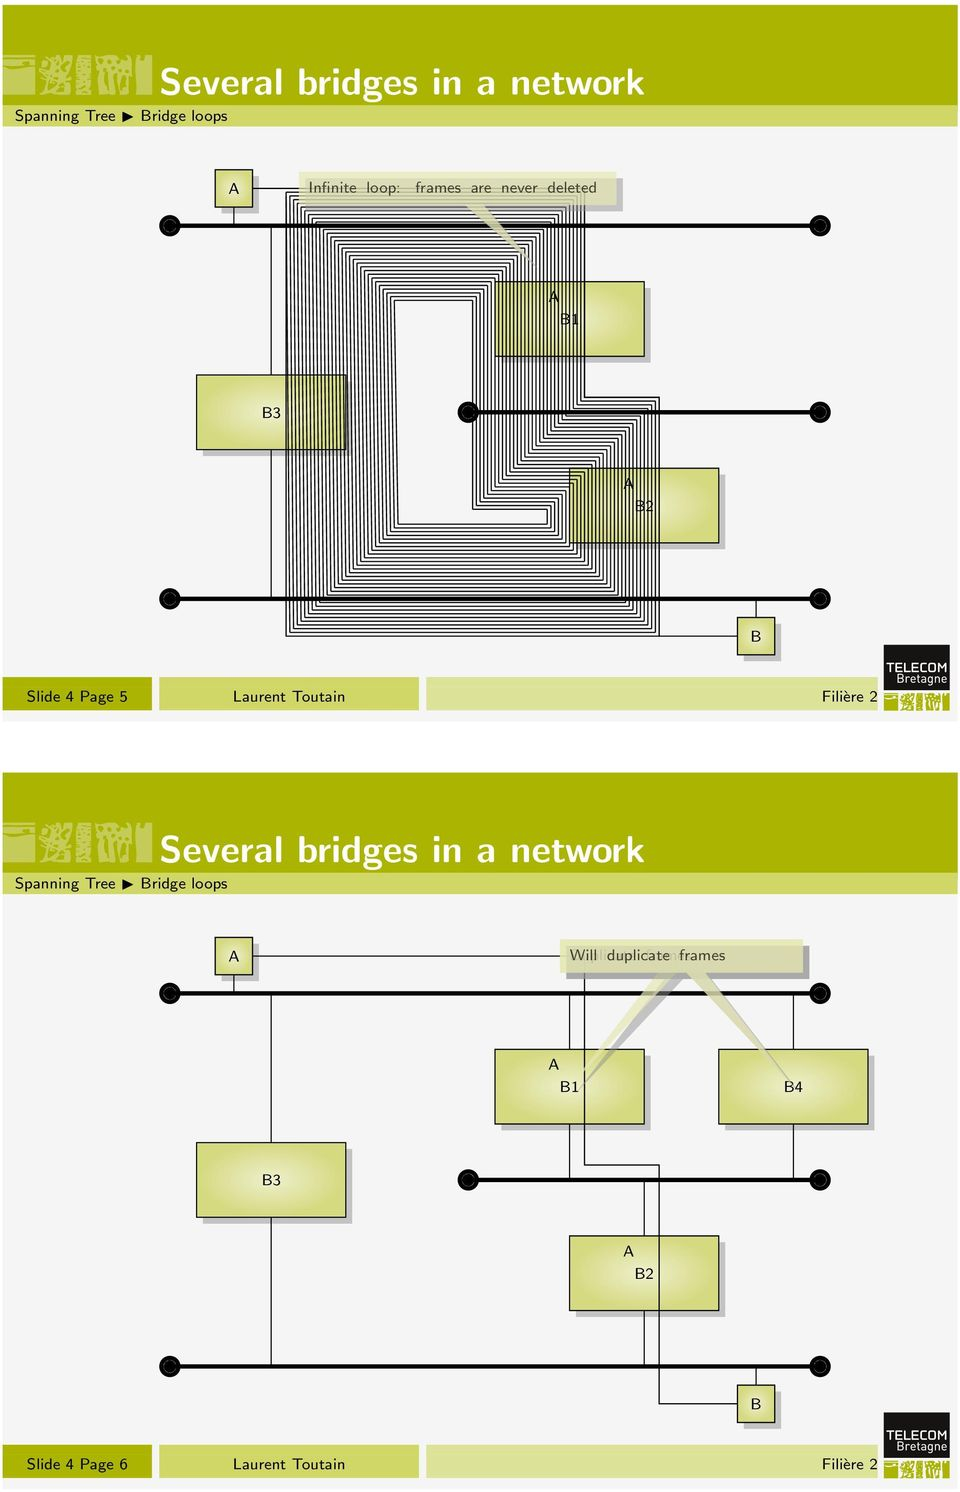 Filière 2 Several bridges in a network Spanning Tree Bridge loops A Duplicate